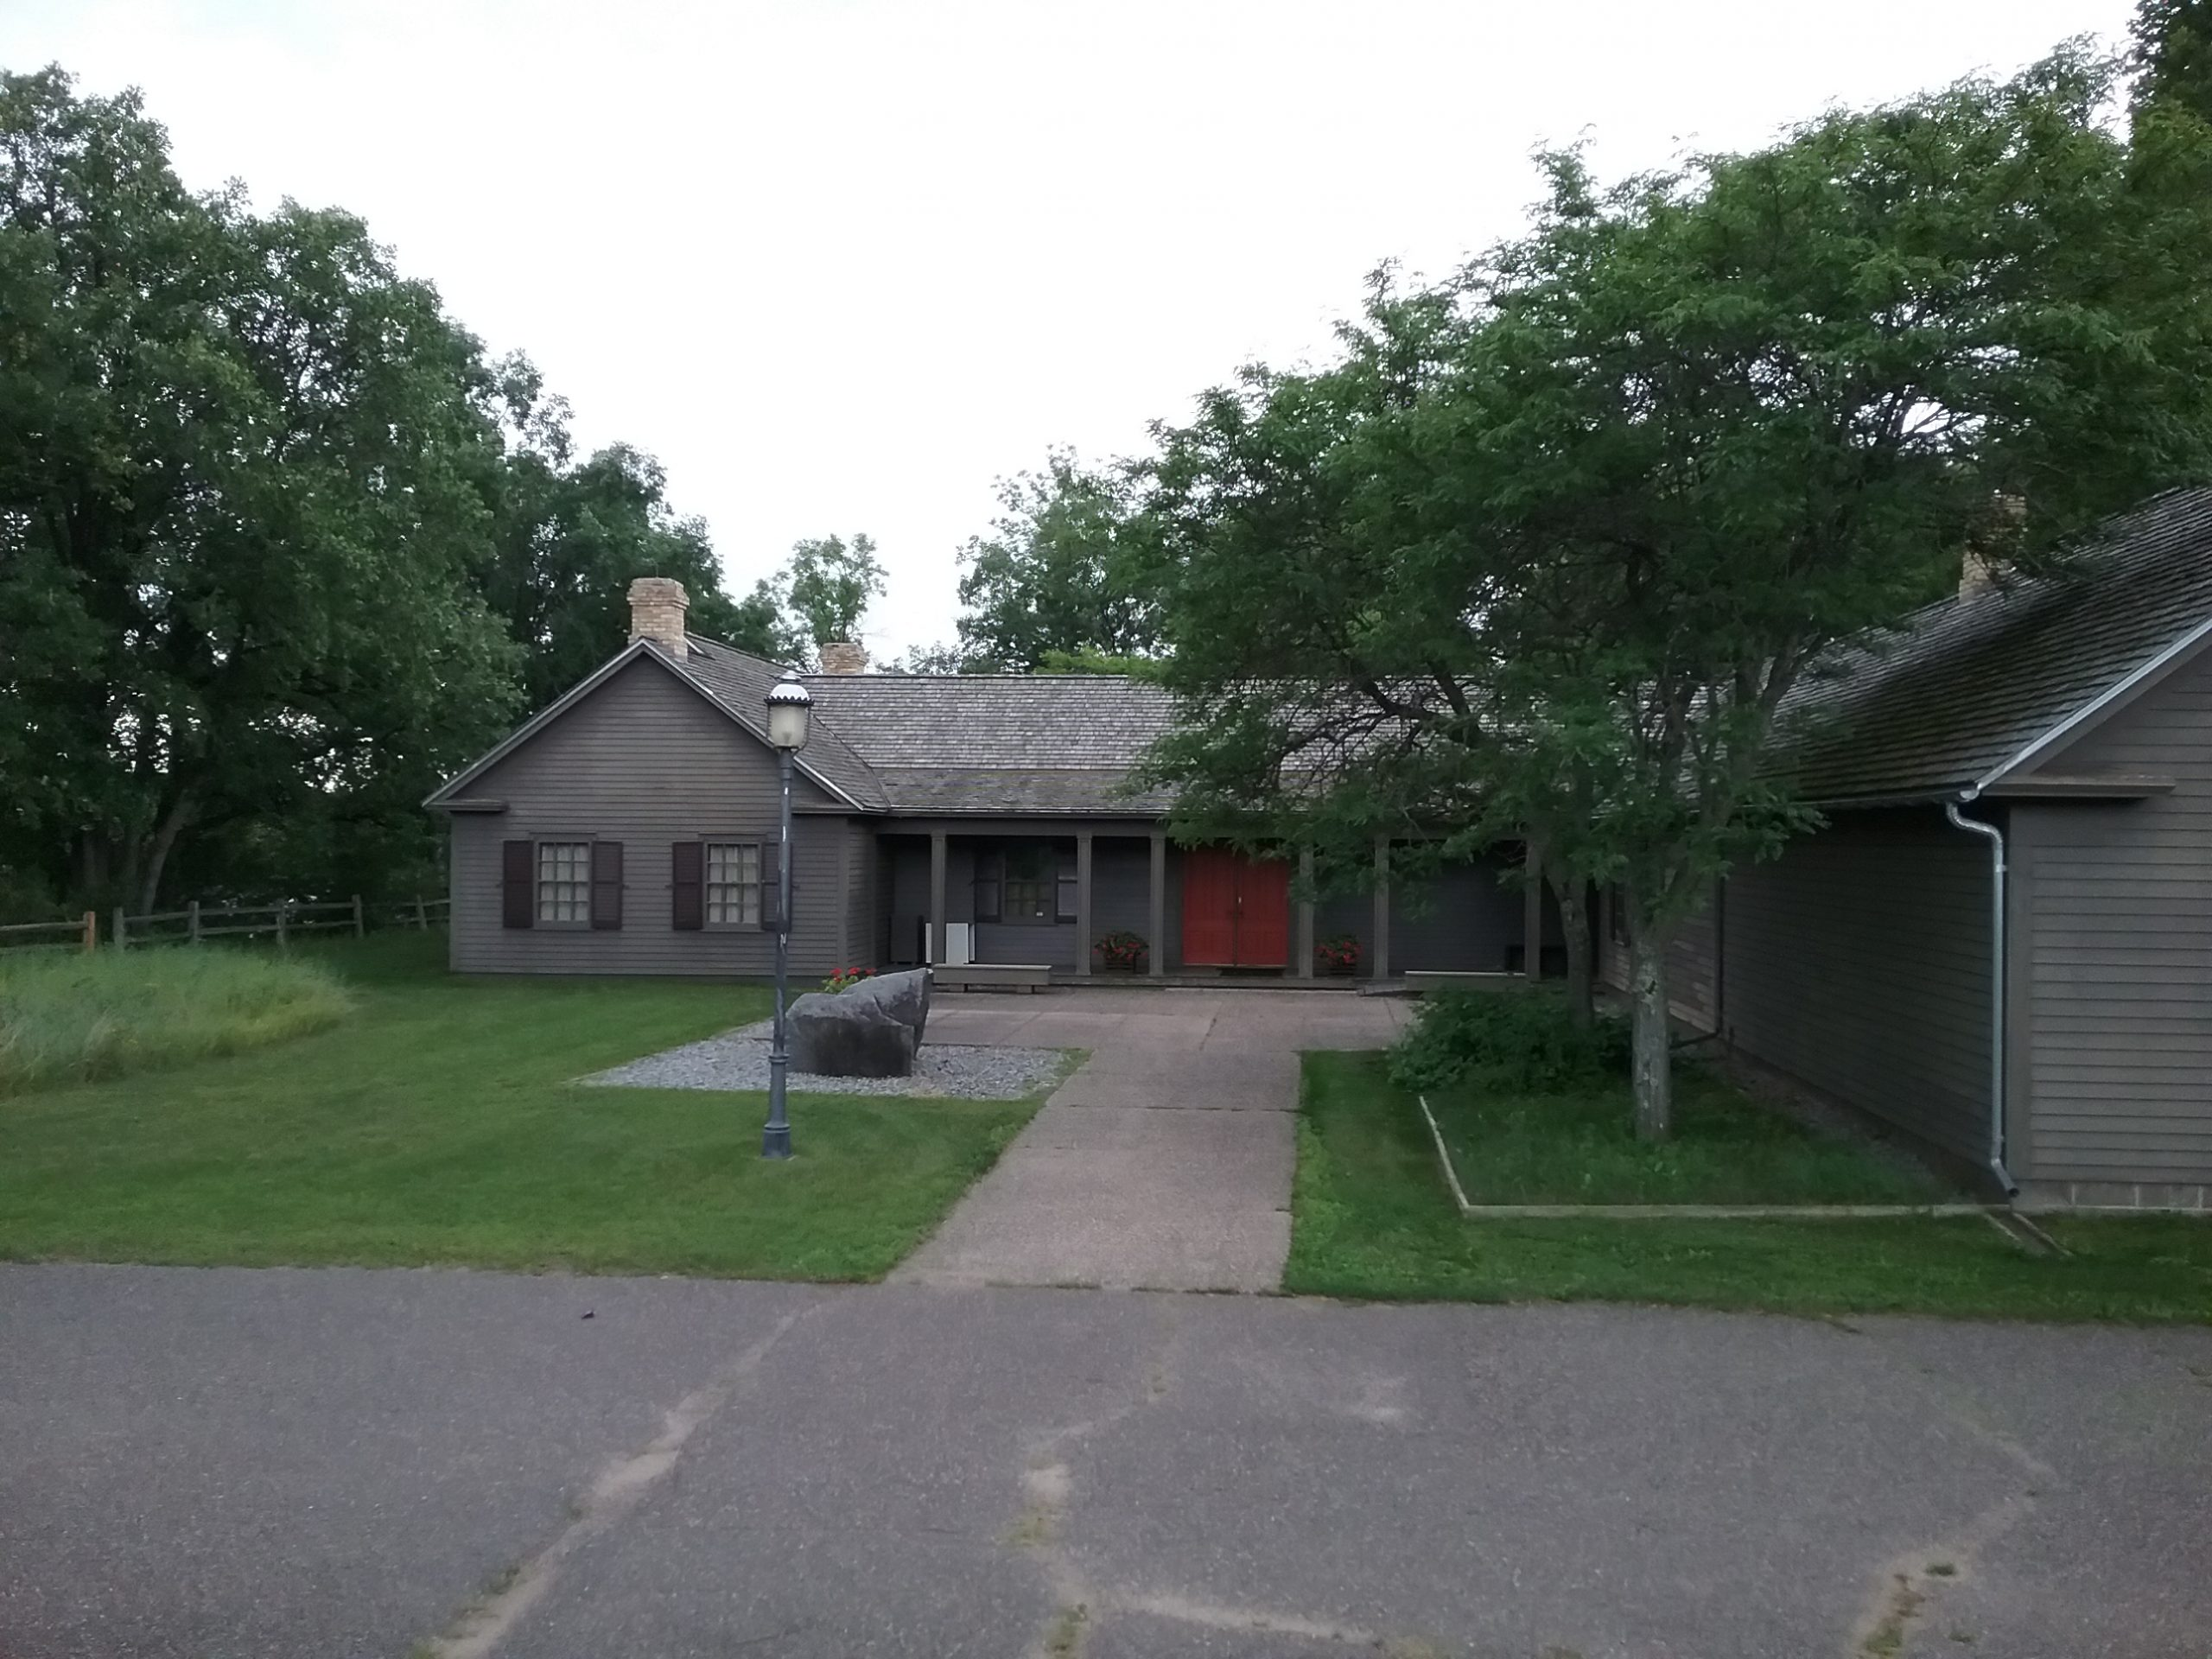 The Charles A. Weyerhaeuser Memorial Museum, Little Falls, MN. Photo by Mary Warner, July 2020.